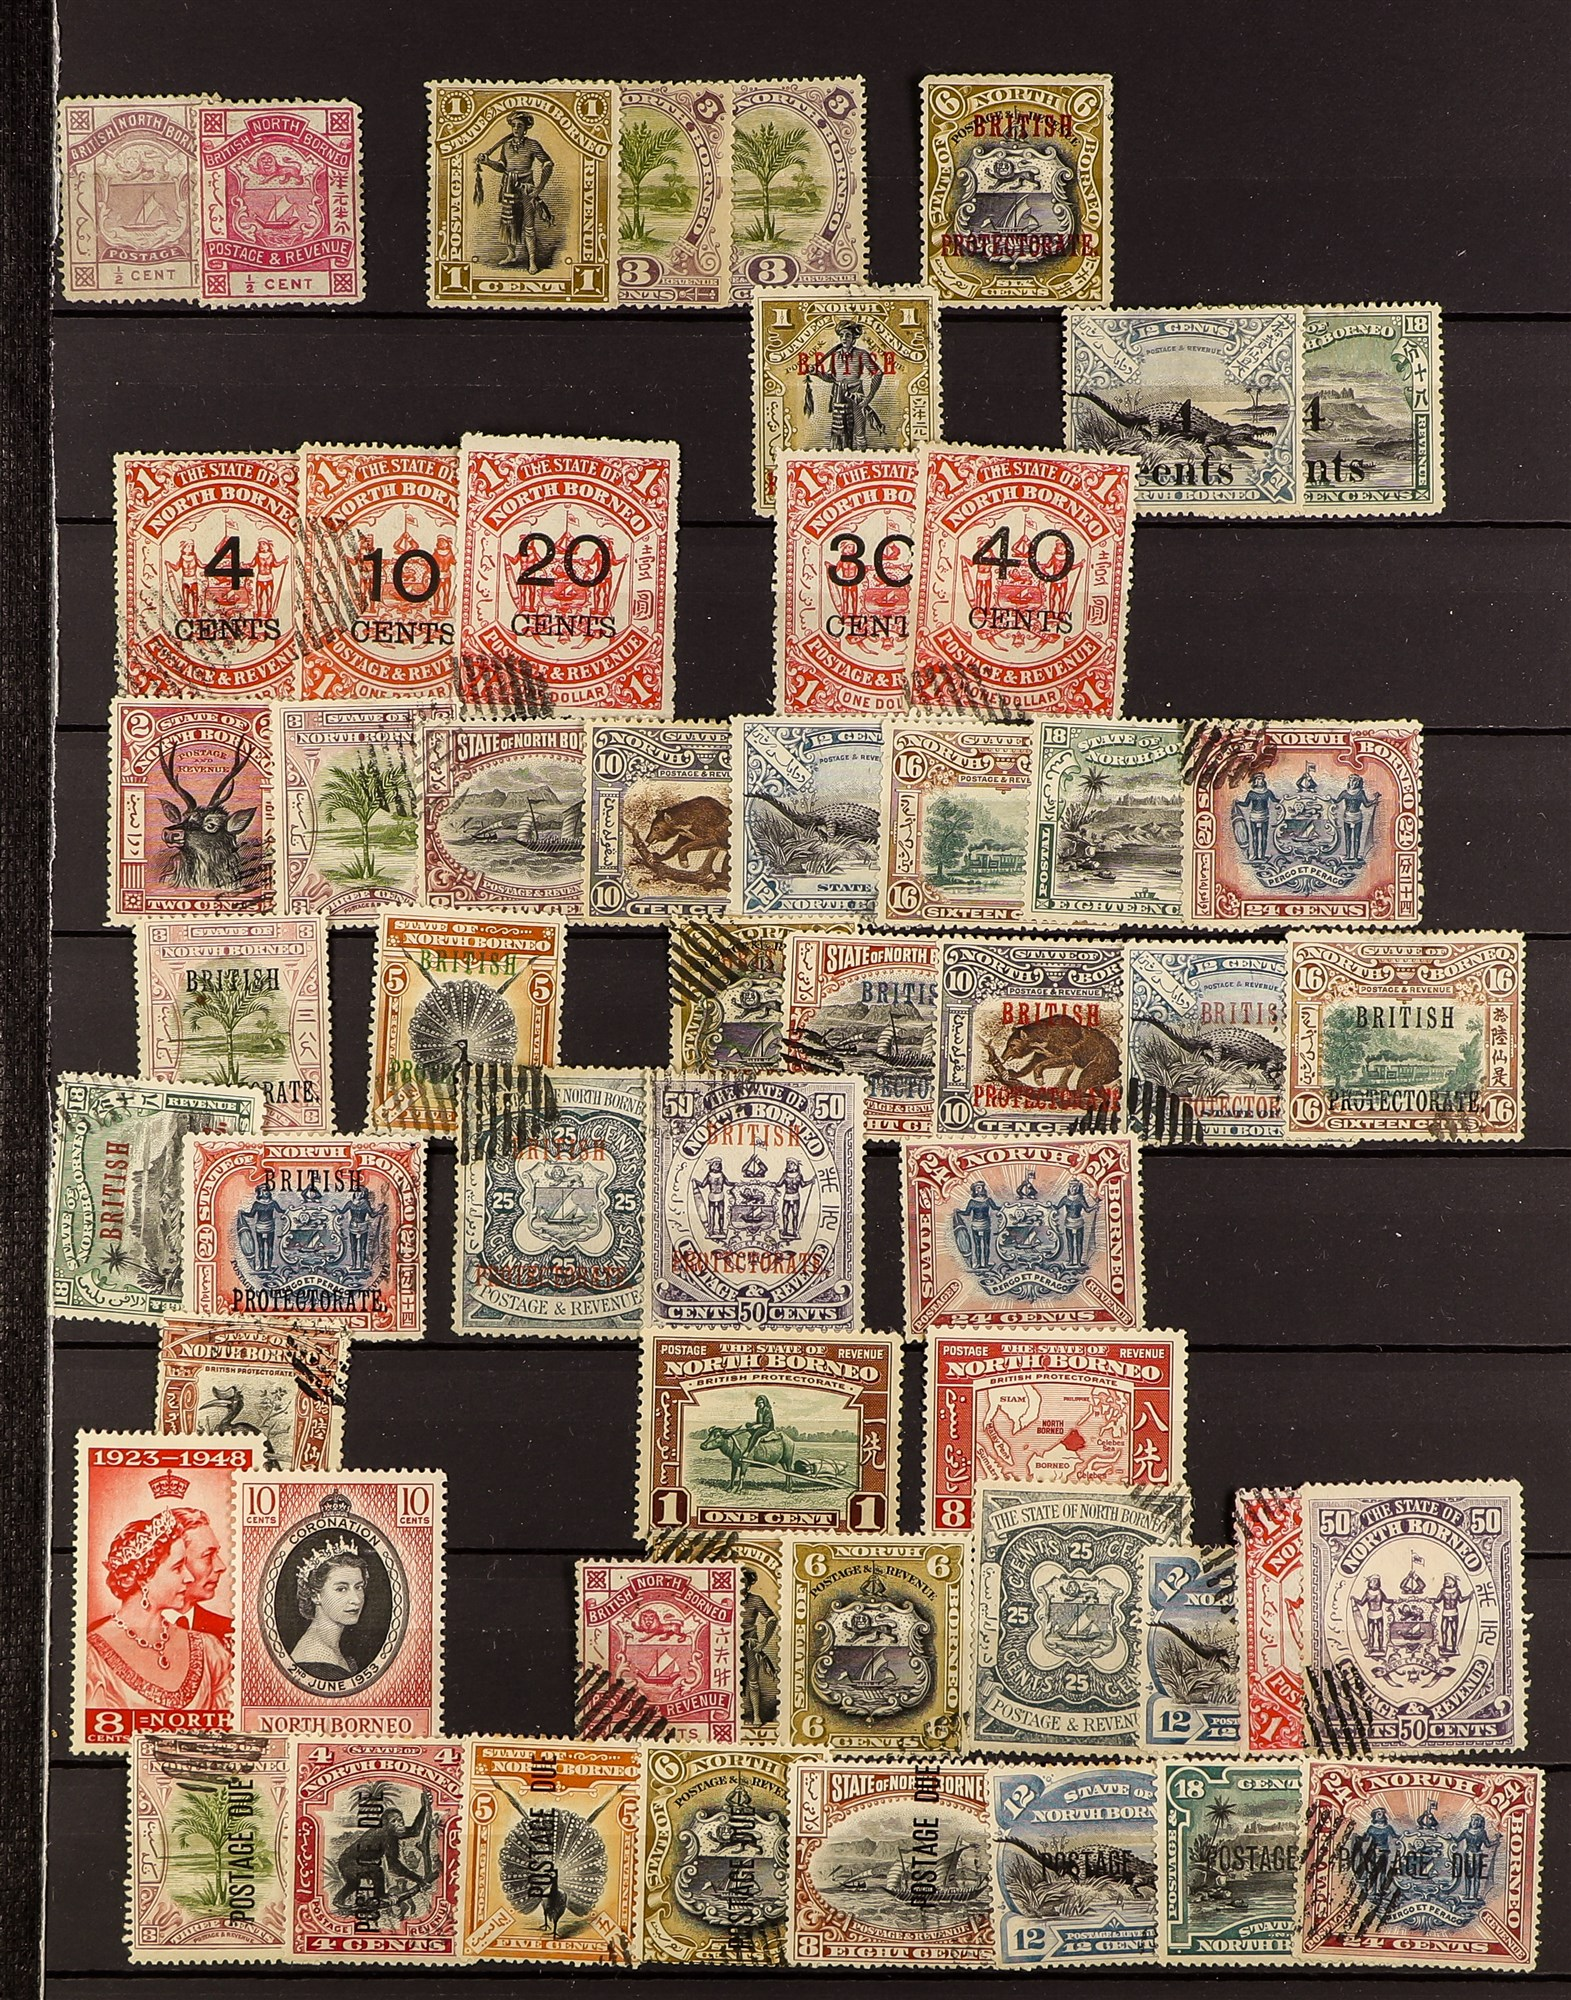 COLLECTIONS & ACCUMULATIONS COMMONWEALTH AND GB accumulation on pages and stock cards, S.T.C. £3000. - Image 2 of 5